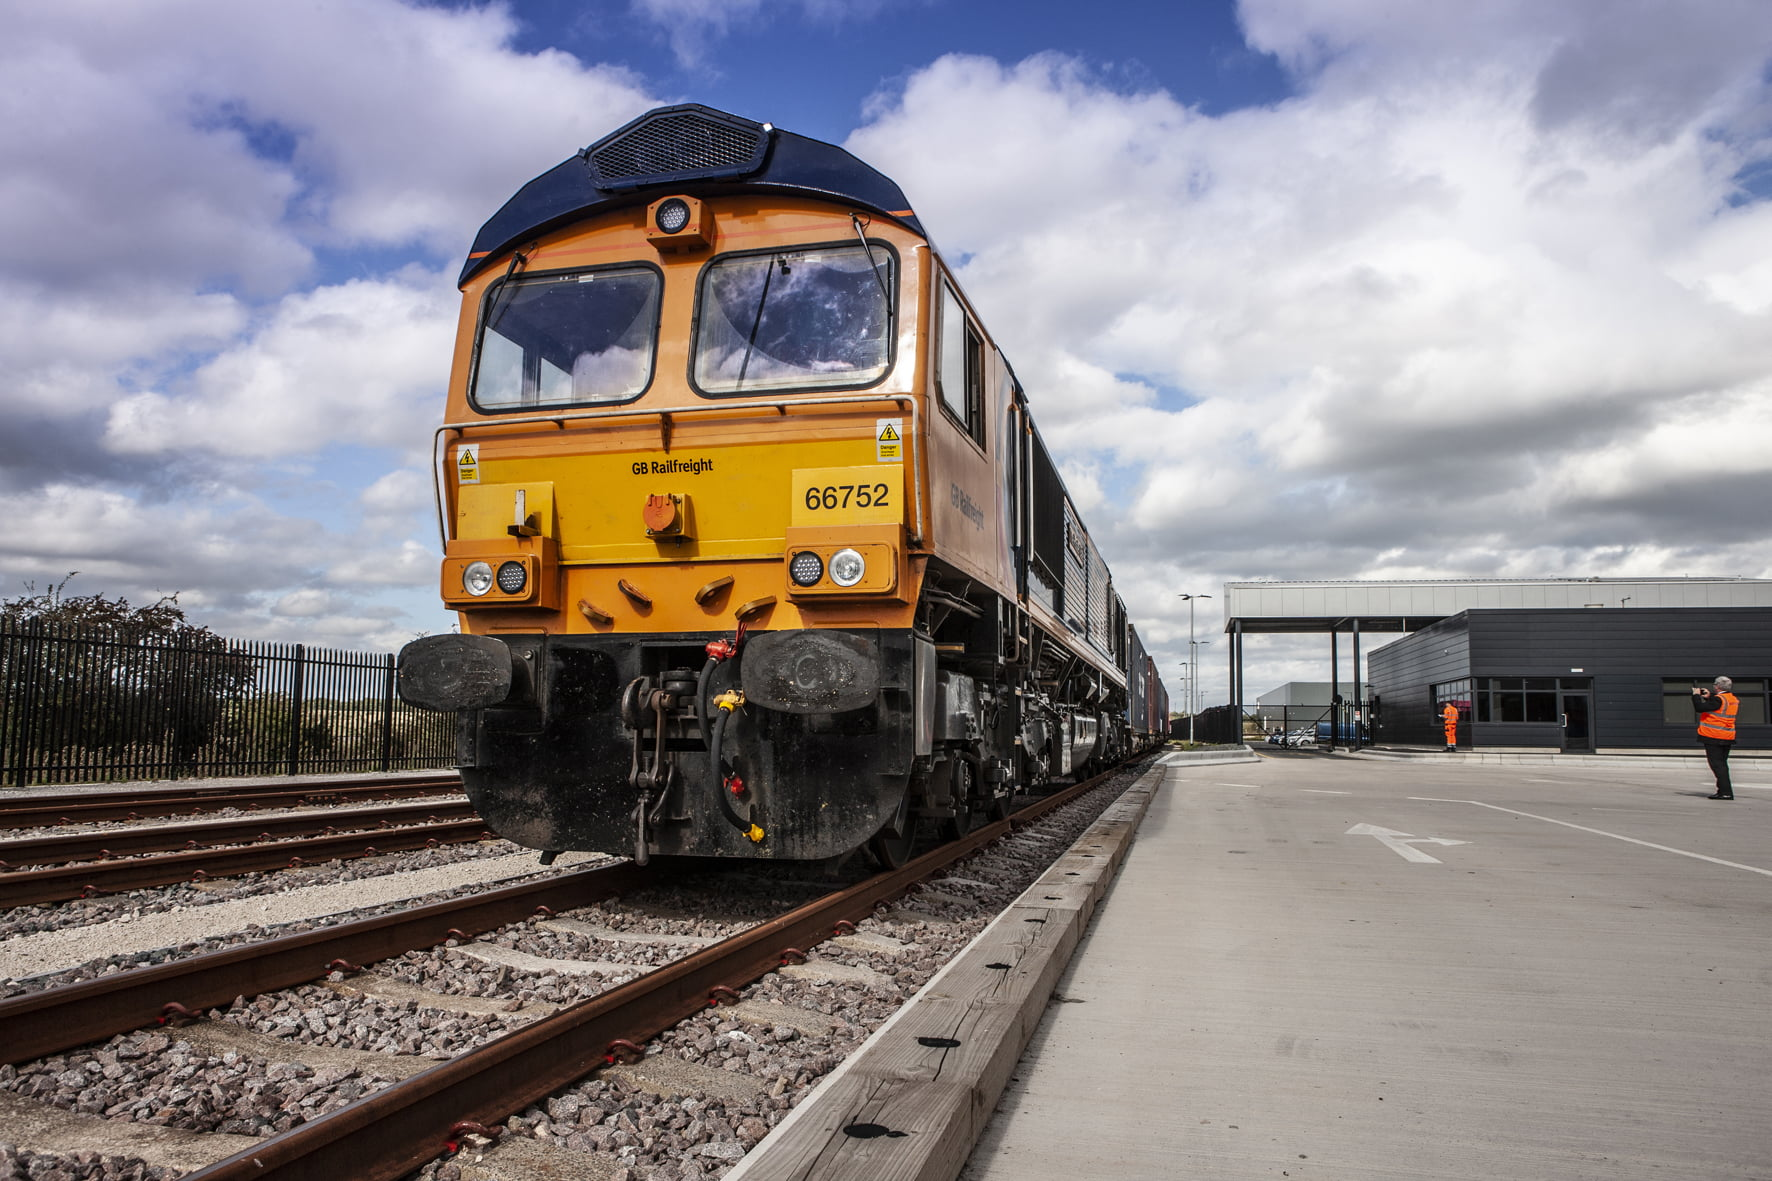 First GBRf train comes in to iPort Rail Doncaster 1 iPort Rail